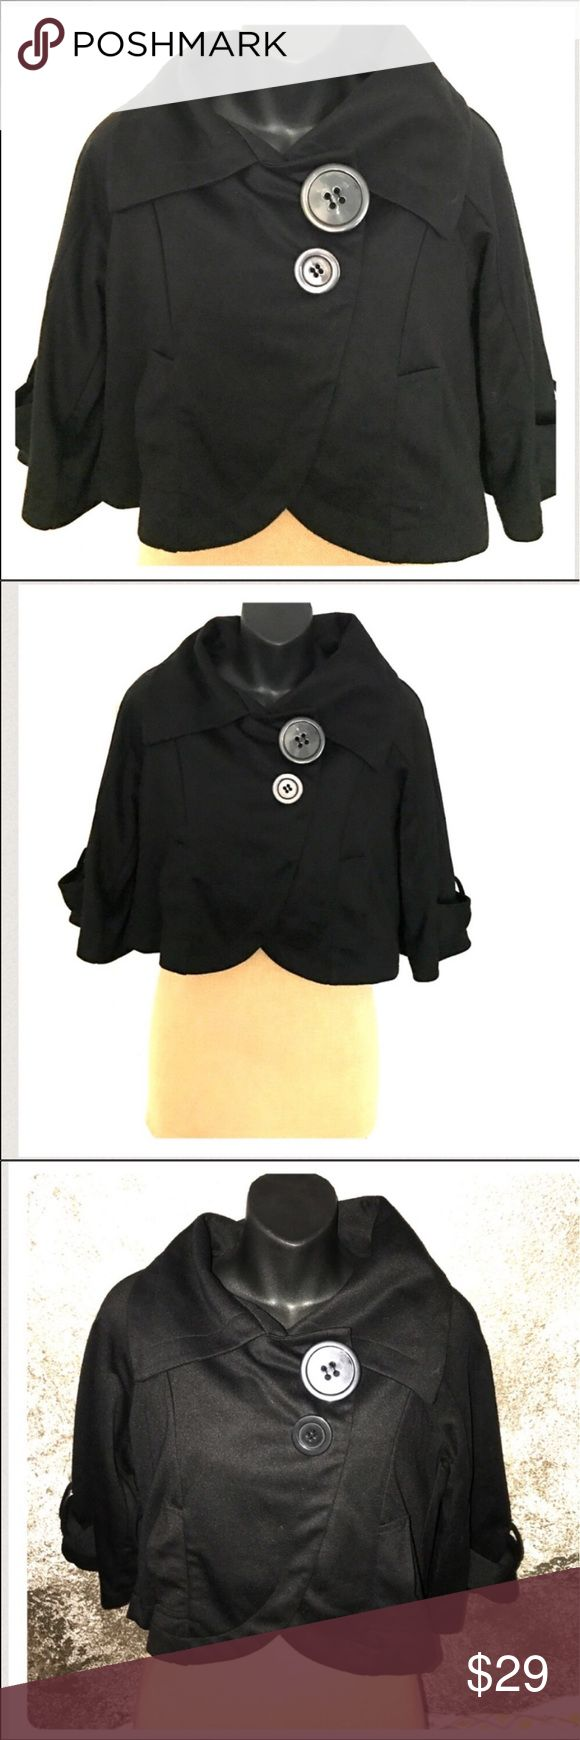 """Bell 3/4 sleeves crop vintage style shrug jacket M This crop vintage style jacket has large collar, snap buttons (adorned w/ large top button and smaller second button). Black. Bell sleeves come to my elbows. Cropped. Soft material. 80% polyester, 20% rayon. Two front pockets. Measures approximately 36.5"""" Width from under the armpit seam and around without stretching. Around 16.5 """"length. Sleeves approximately 17.5"""" from shoulder to end. Sleeves about 9.5"""" from armpit hem to end of sleeve…"""